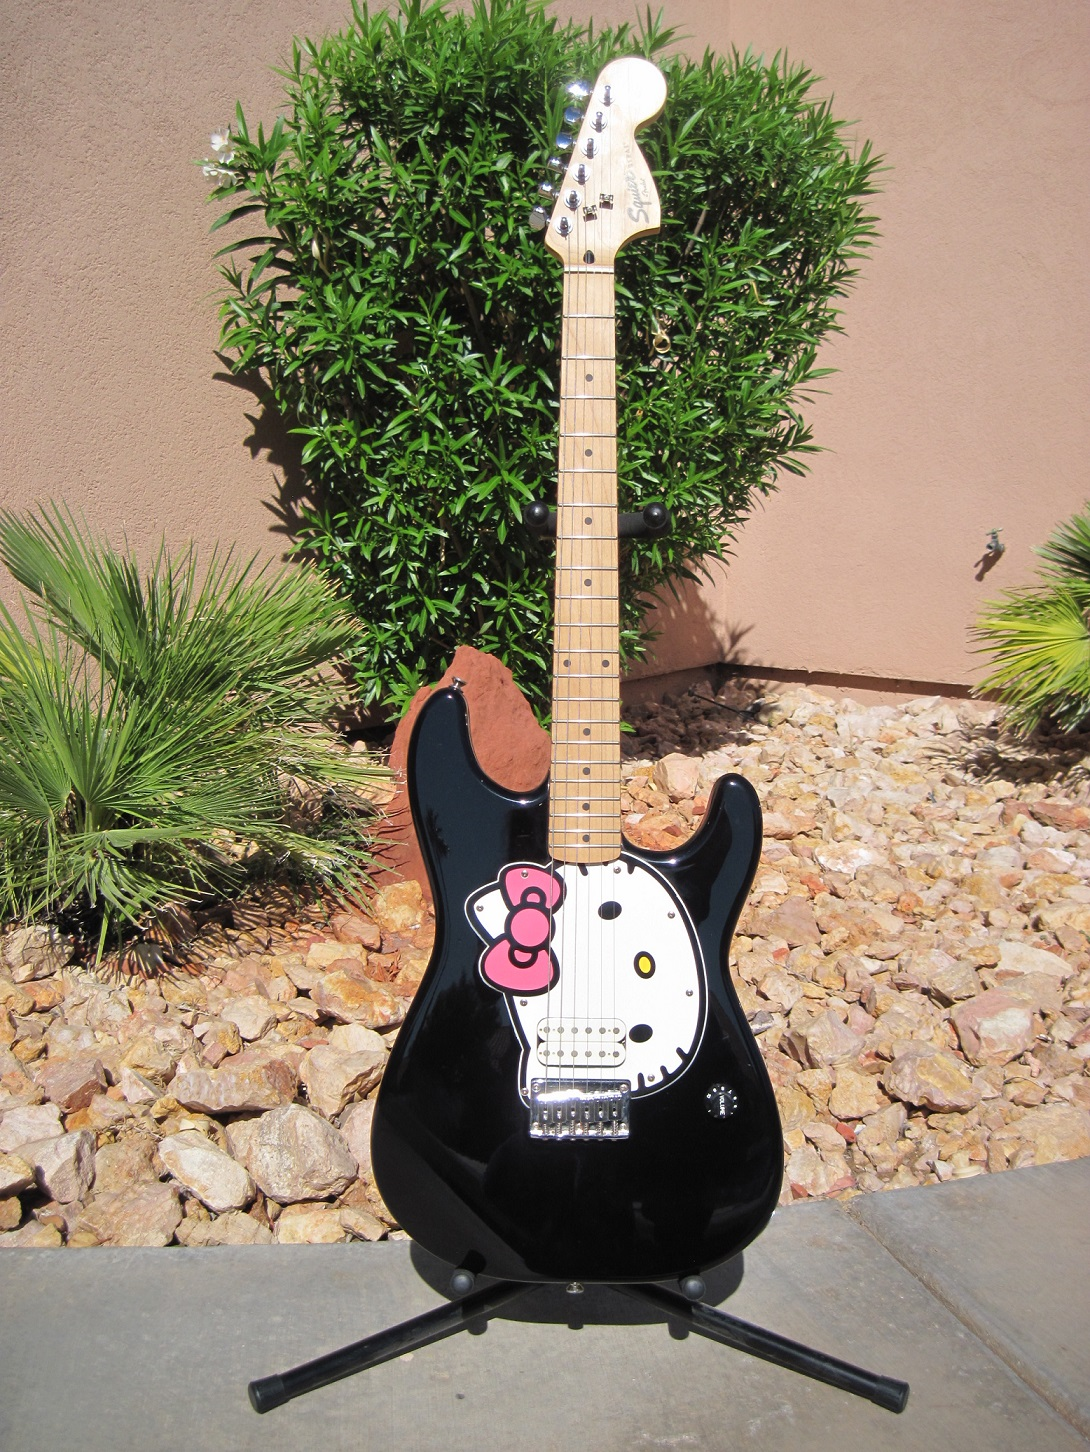 2005 Fender Squier Affinity Hello Kitty Strat Black.